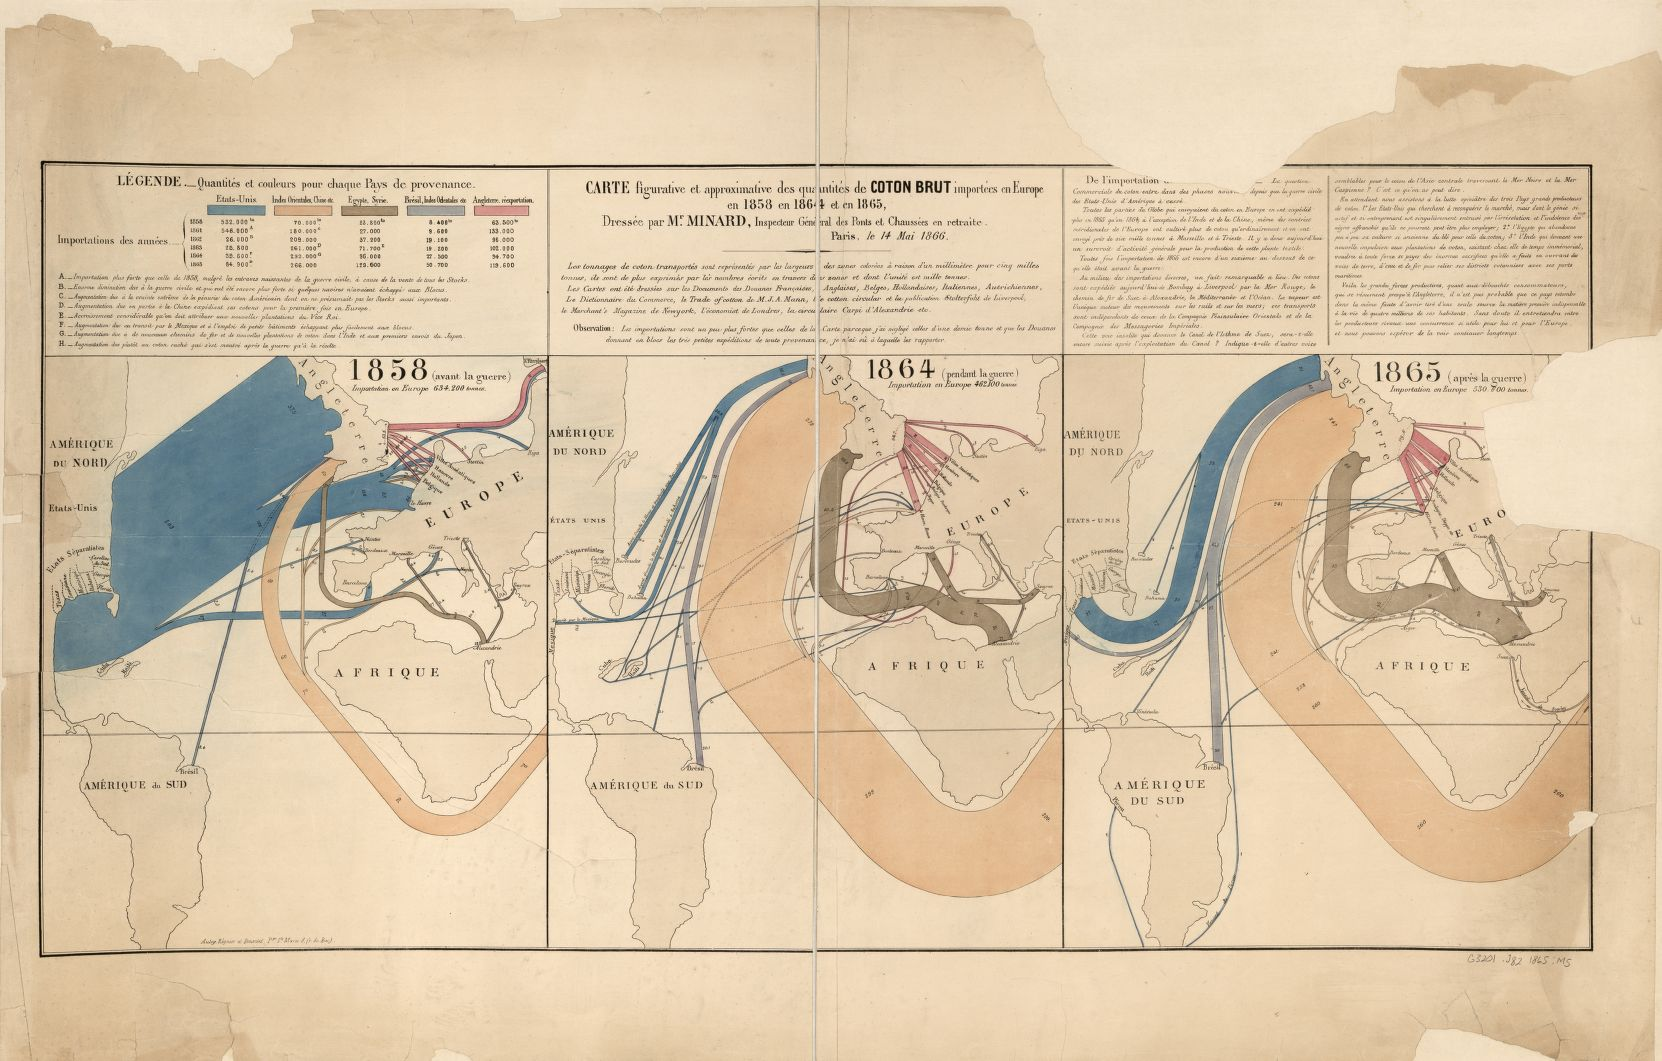 Global cotton flows 1858-1865